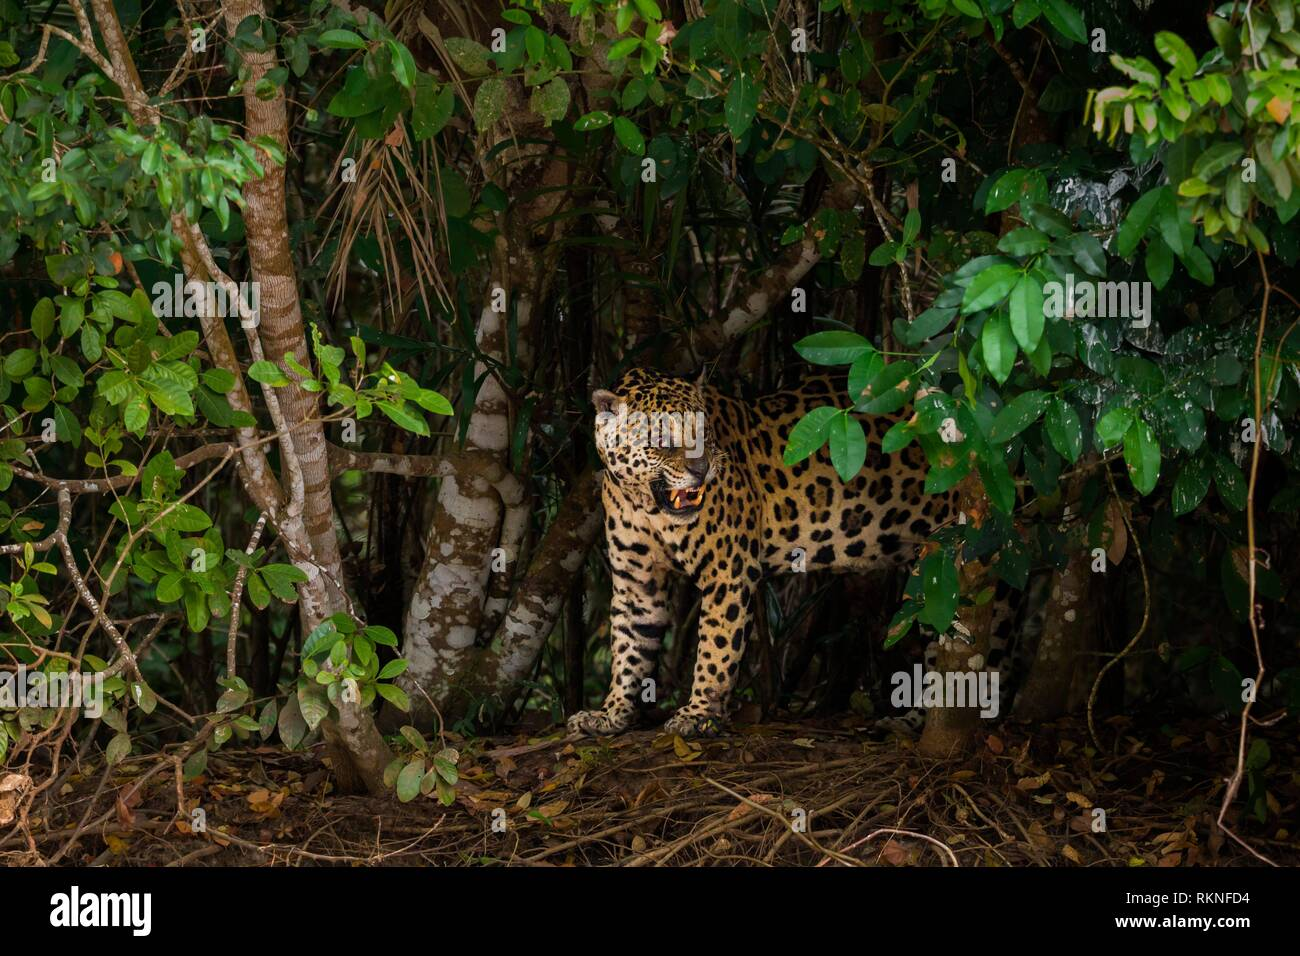 Snarling male Jaguar (Panthera onca), blind in one eye, Pantanal, Mato Grosso, Brazil. - Stock Image